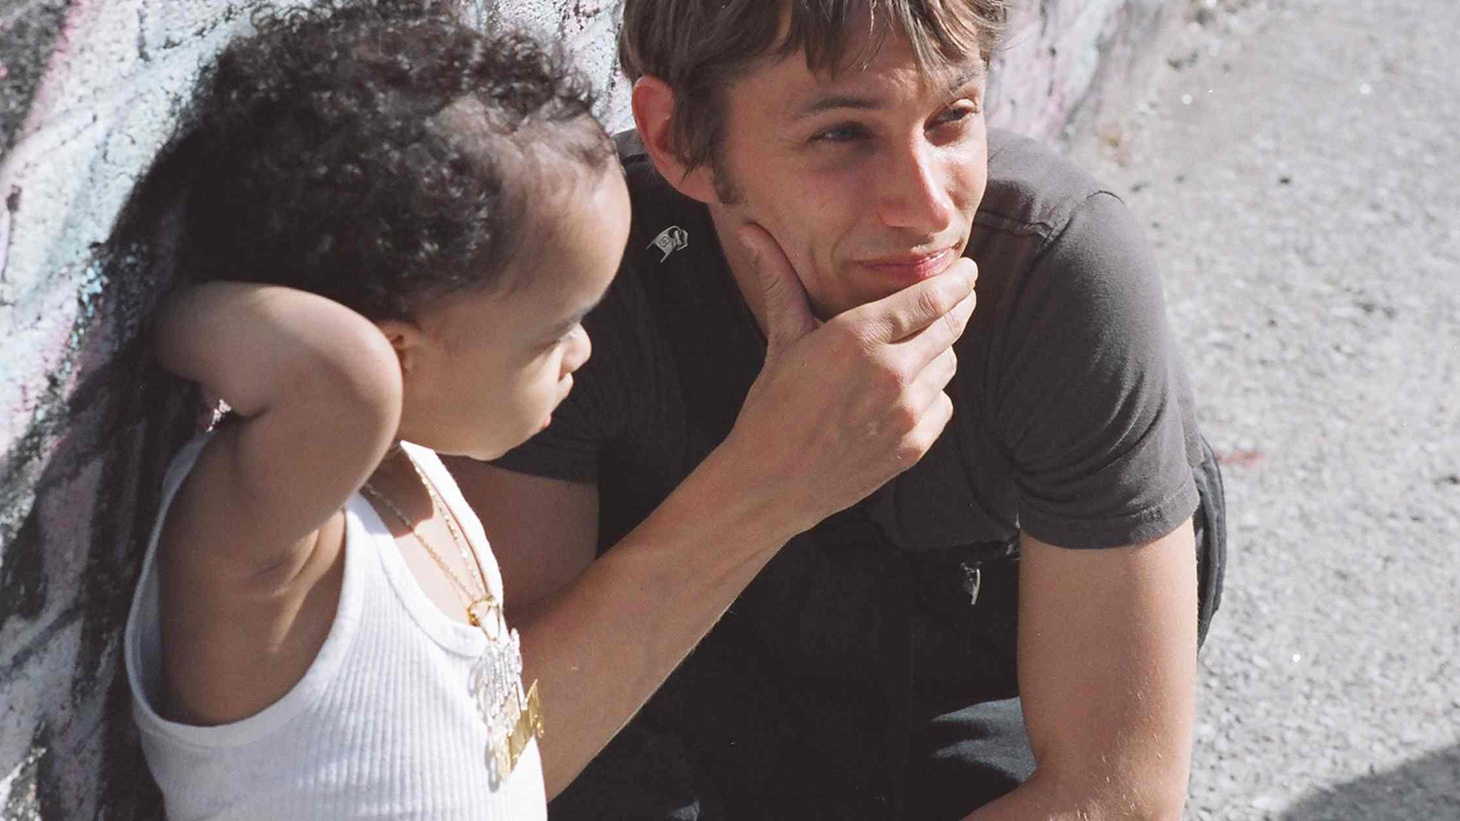 Writer/director Sean Baker is best known for Greg the Bunny and Warren the Ape on TV. His feature film, Prince of Broadway, is gritty and stark. It's all more similar than you'd think.